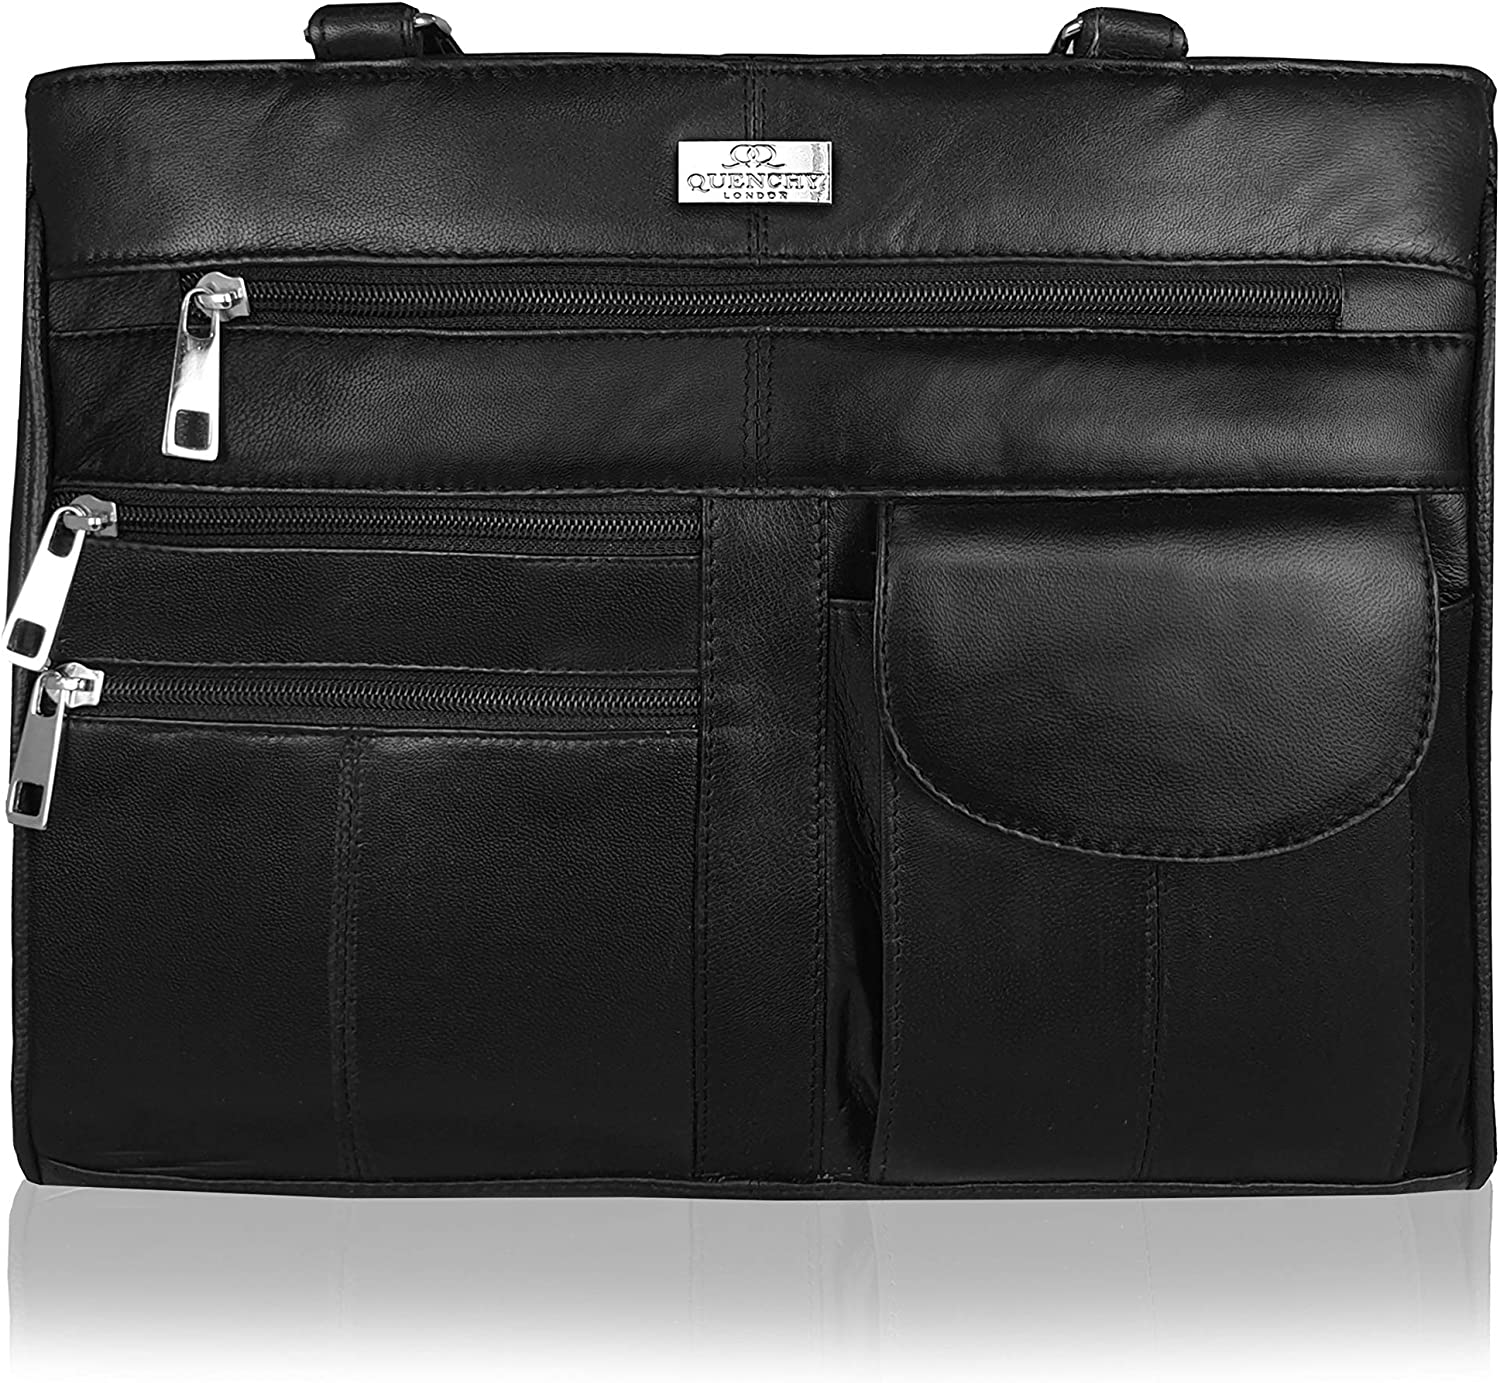 Quenchy London Ladies Leather Purse Handbag in Soft Black Leather - Womens Designer Shoulder Hand Bag with 2 Top Handles – 8 Pockets, 2 Large Zipped Main Sections – Medium Practical Size - QL173